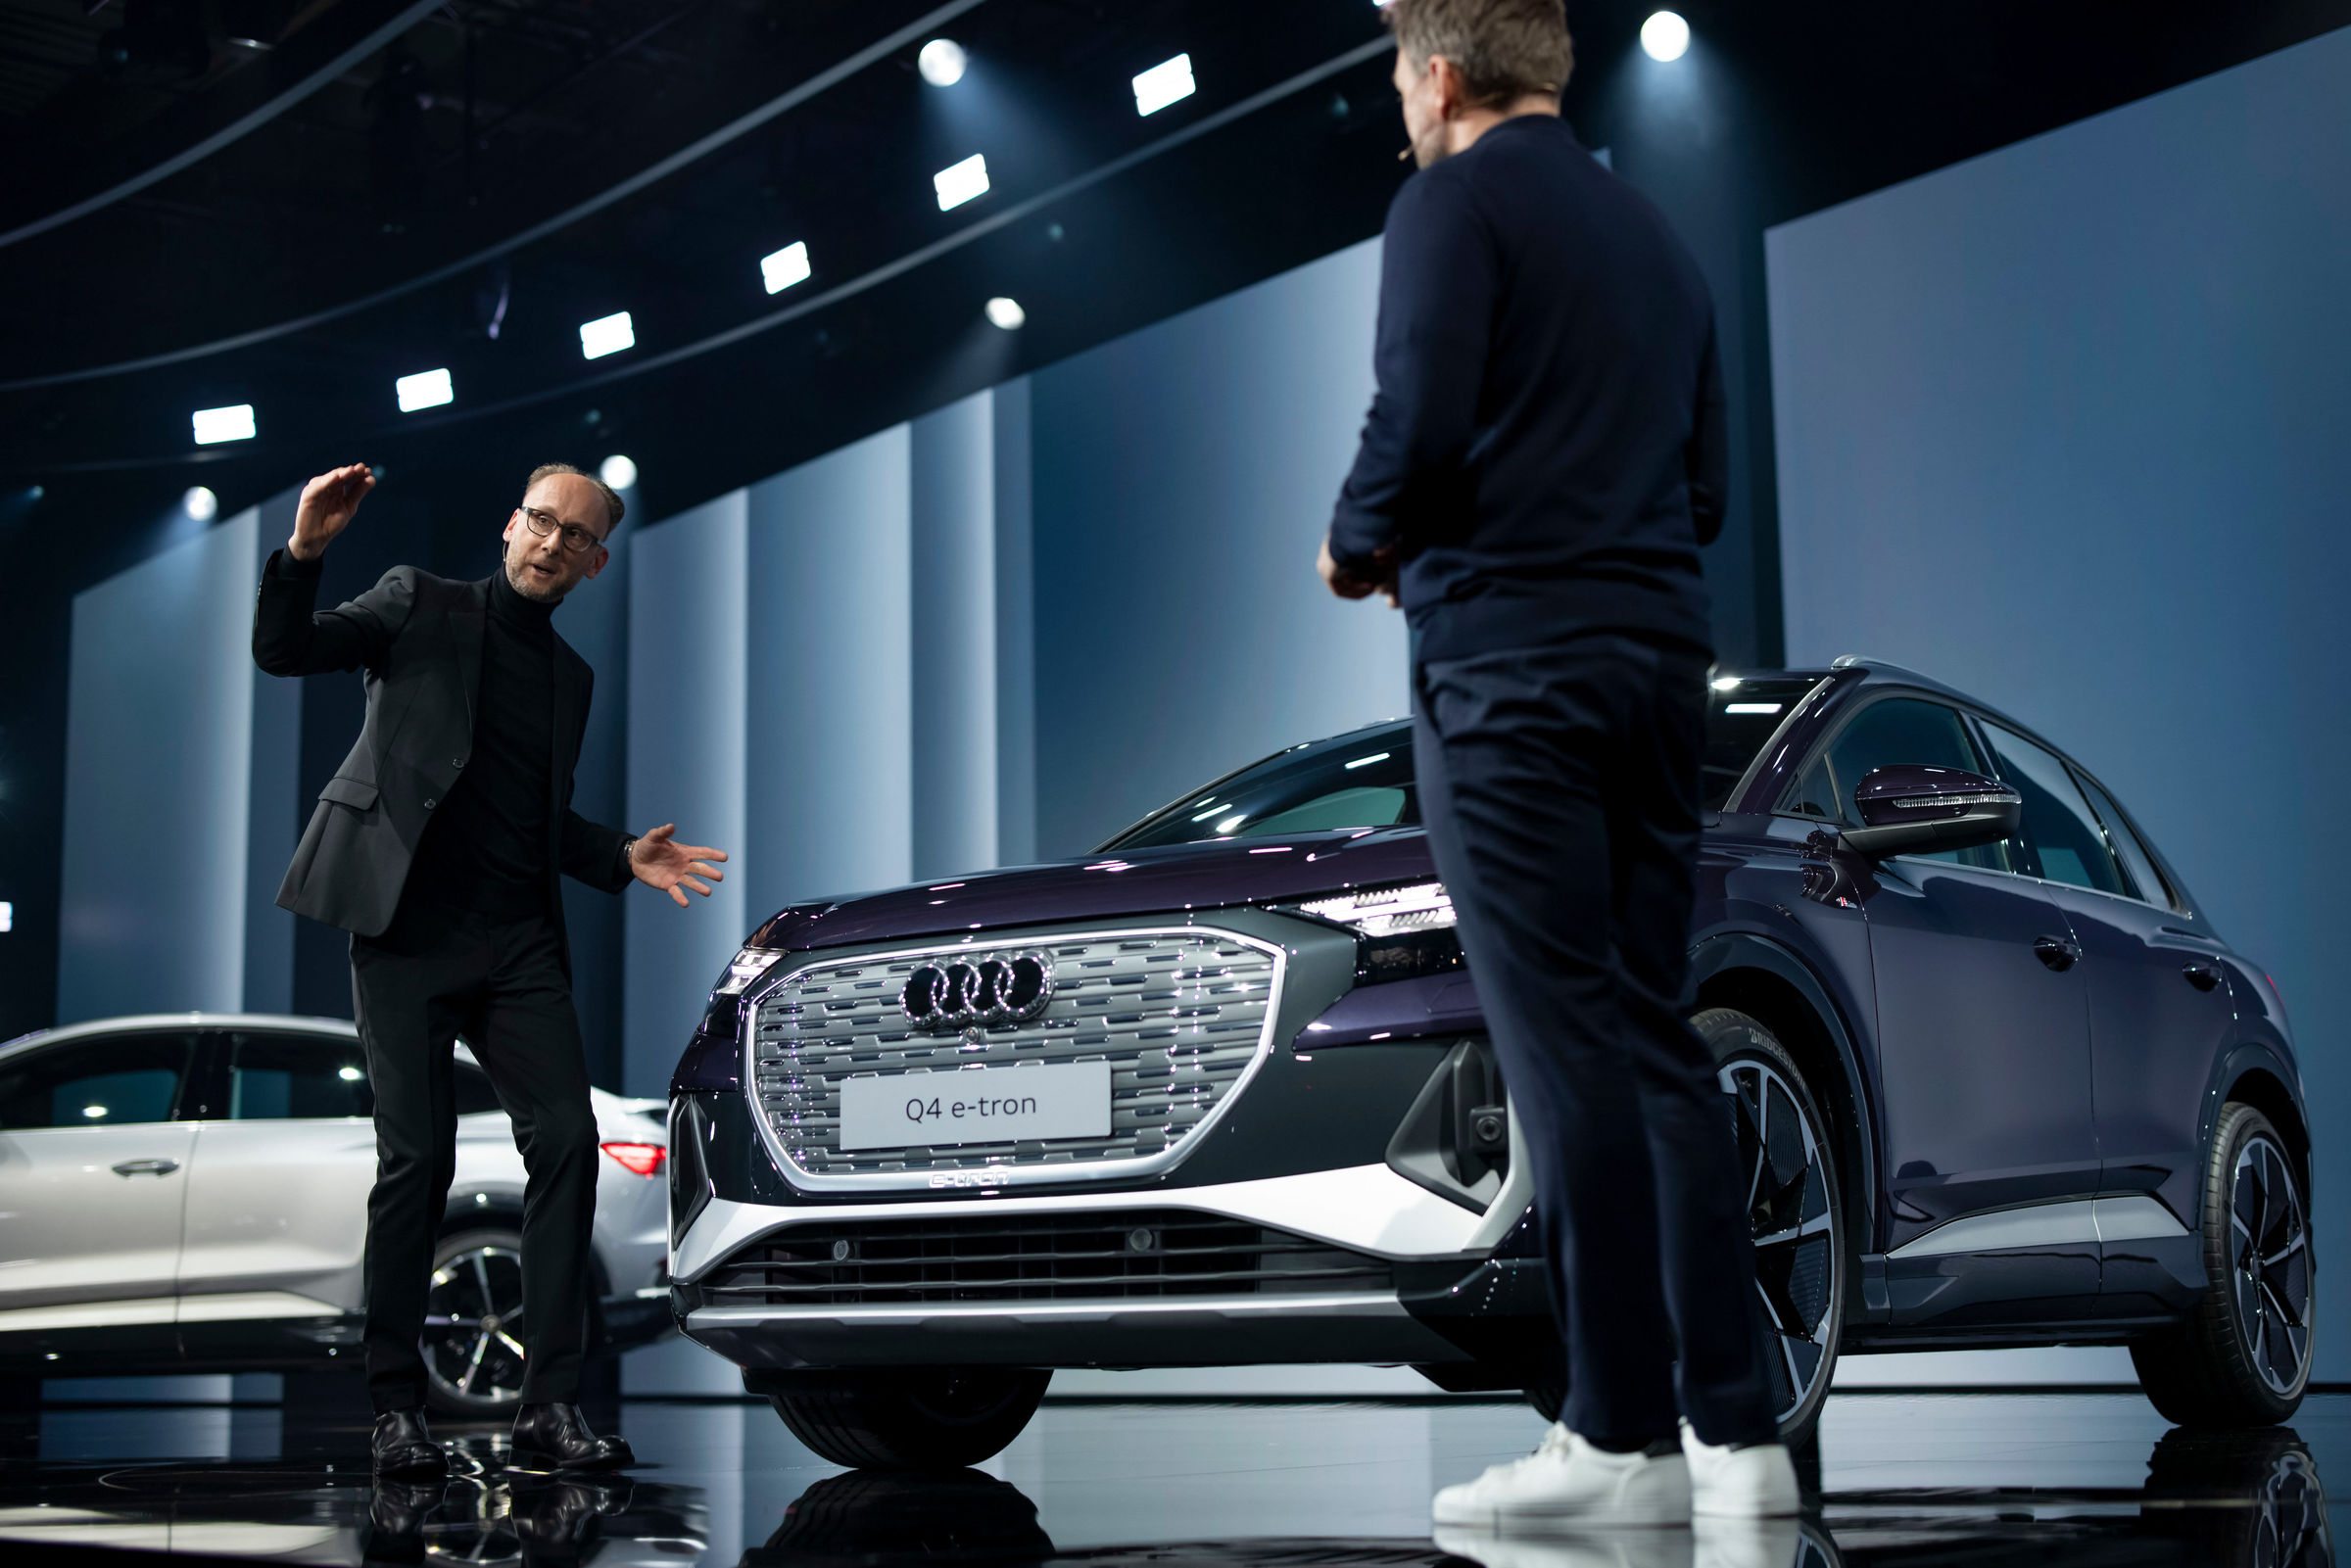 Electrifying: the online world premiere of the Audi Q4 e-tron - Image 4